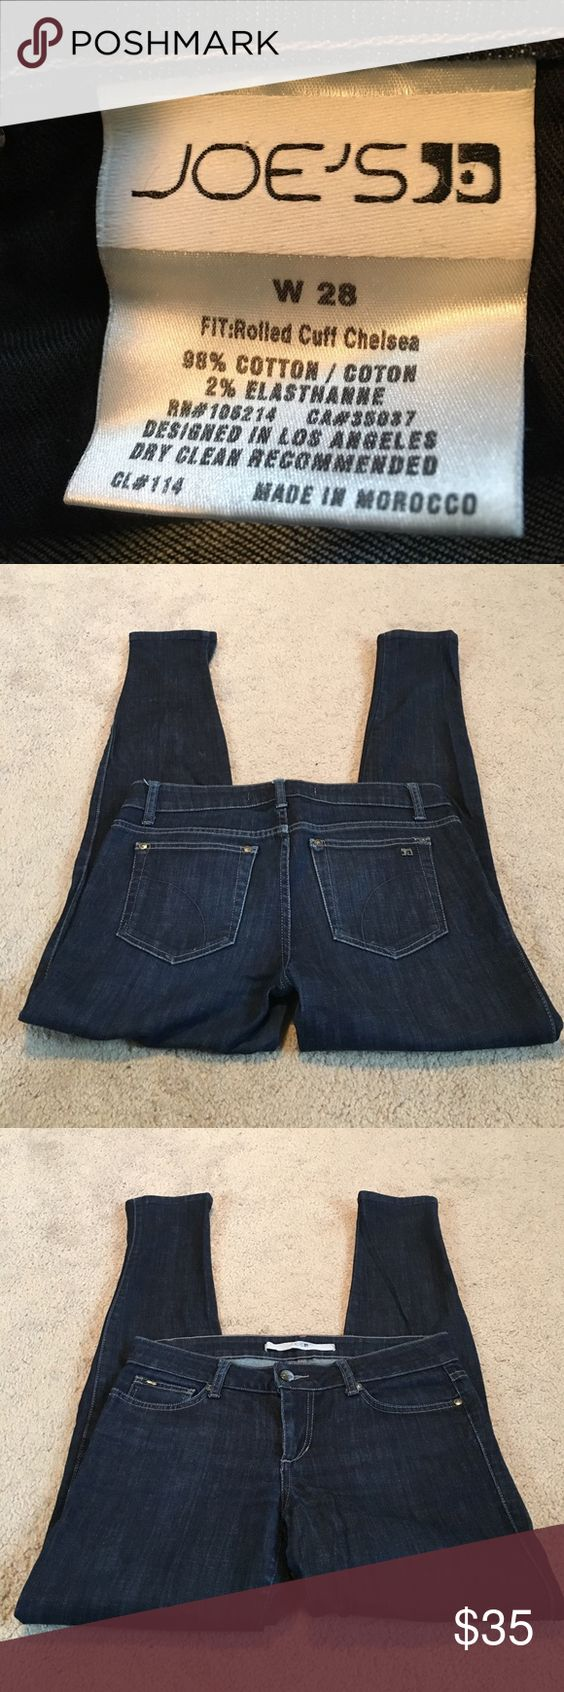 """Joe's Jeans! Joe's Jeans.  The fit is called. Rolled Cuff Chelsea.   Skinny jeans.  Size 28.  Inseam 29"""".  Excellent condition. Joe's Jeans Jeans Skinny"""